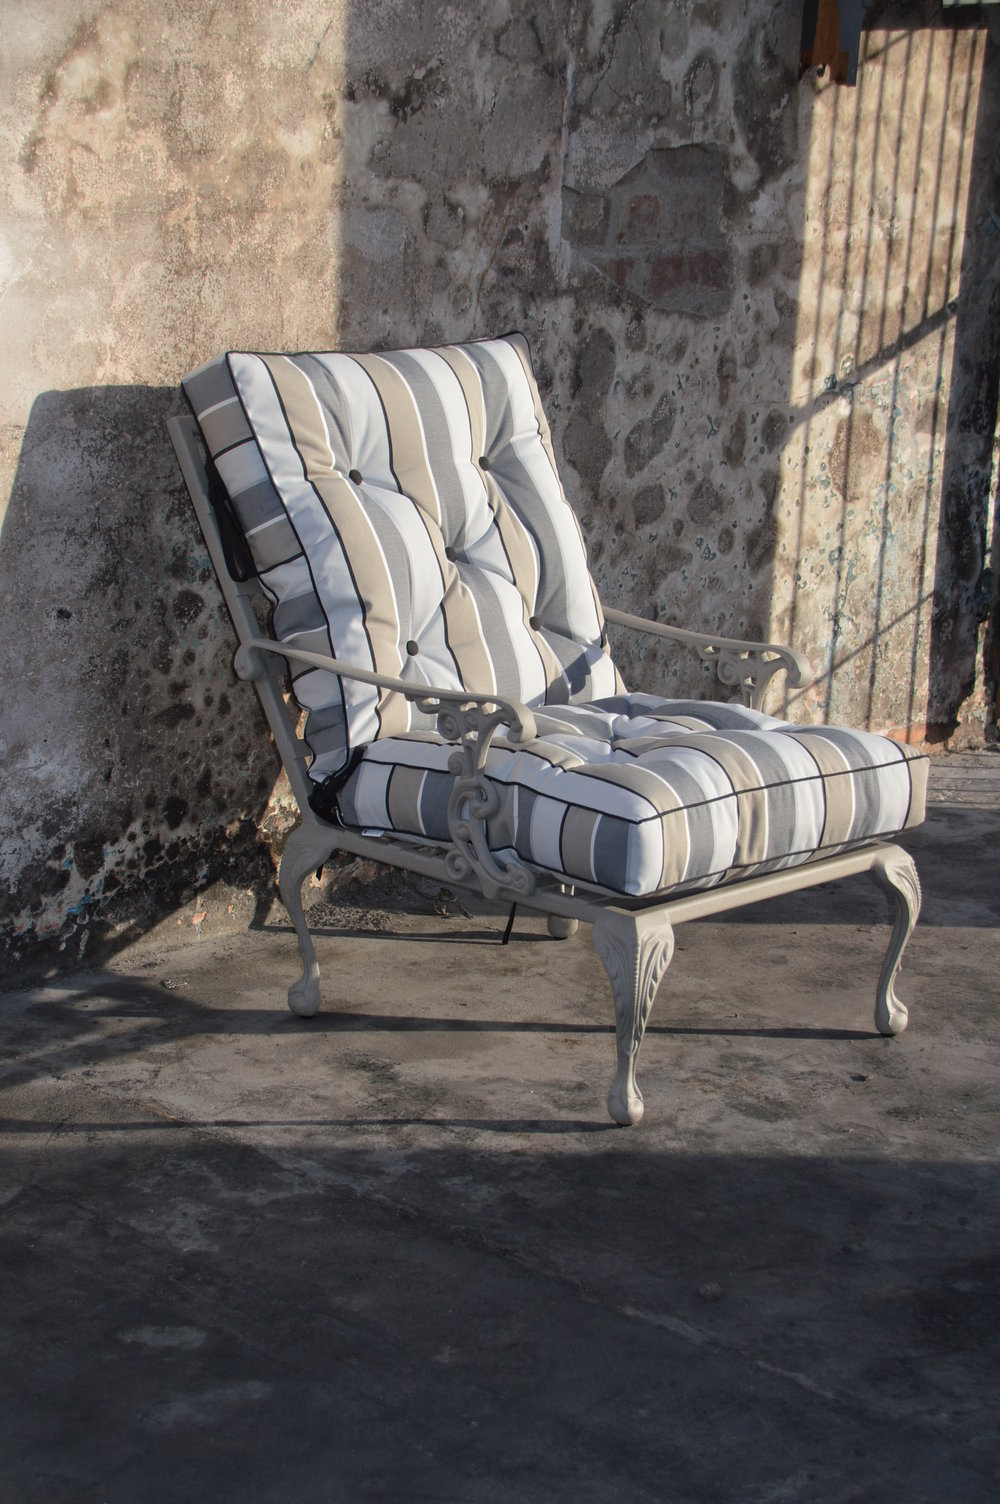 St tropez 1 seater lounger chair